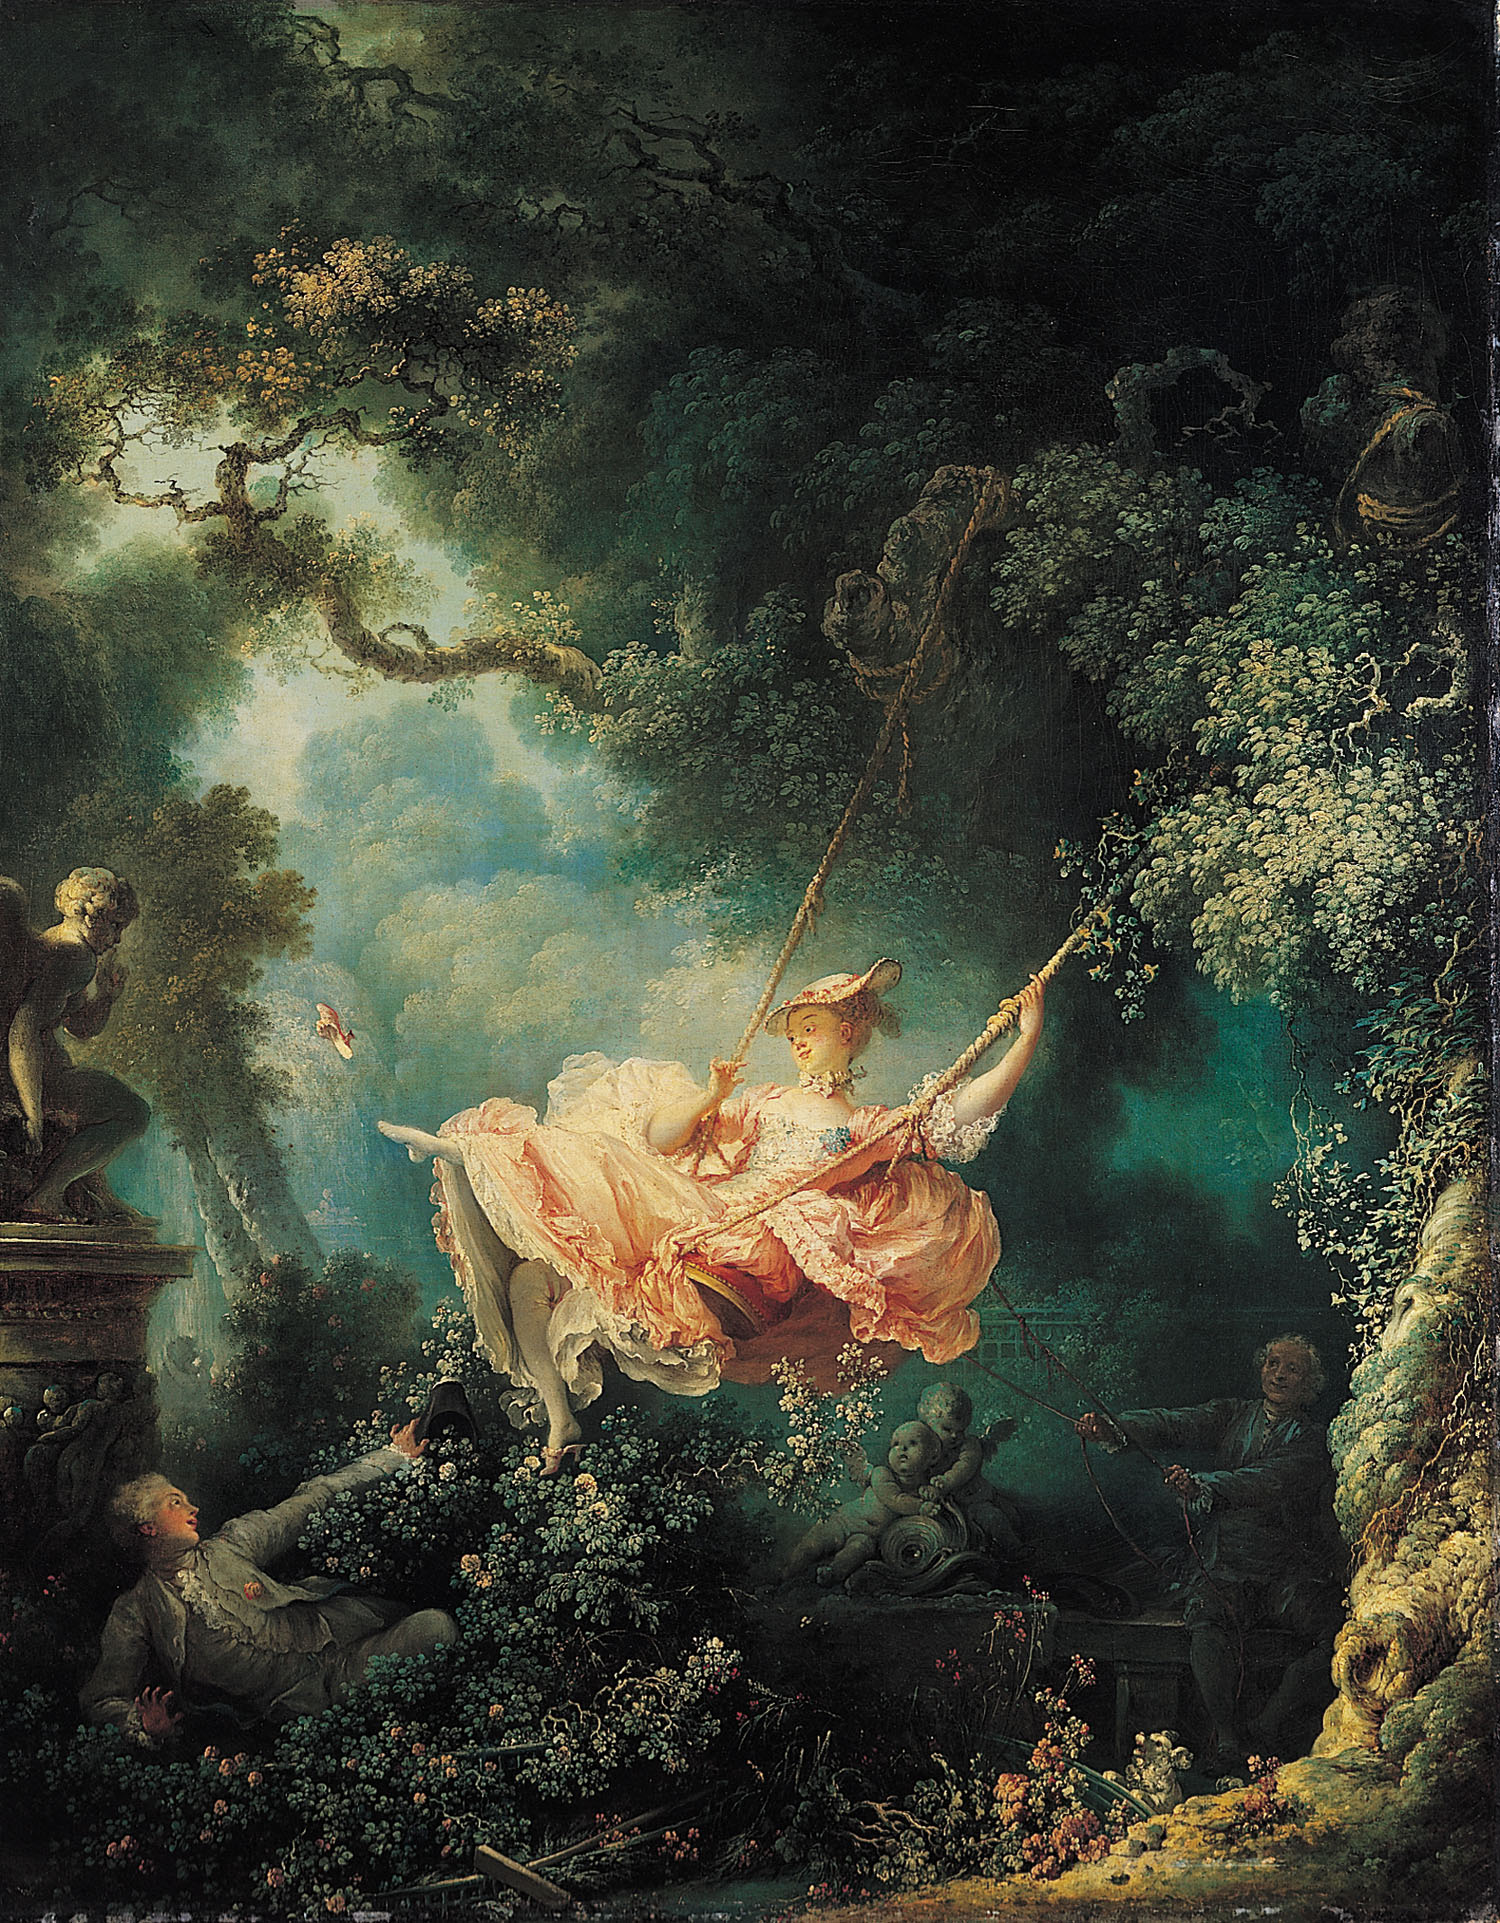 Jean-Honore Fragonard (1732-1806)  The Swing  Oil on canvas, 1767  31 7/8 x 25 1/8 inches (81 x 64 cm)  Wallace Collection, London, England